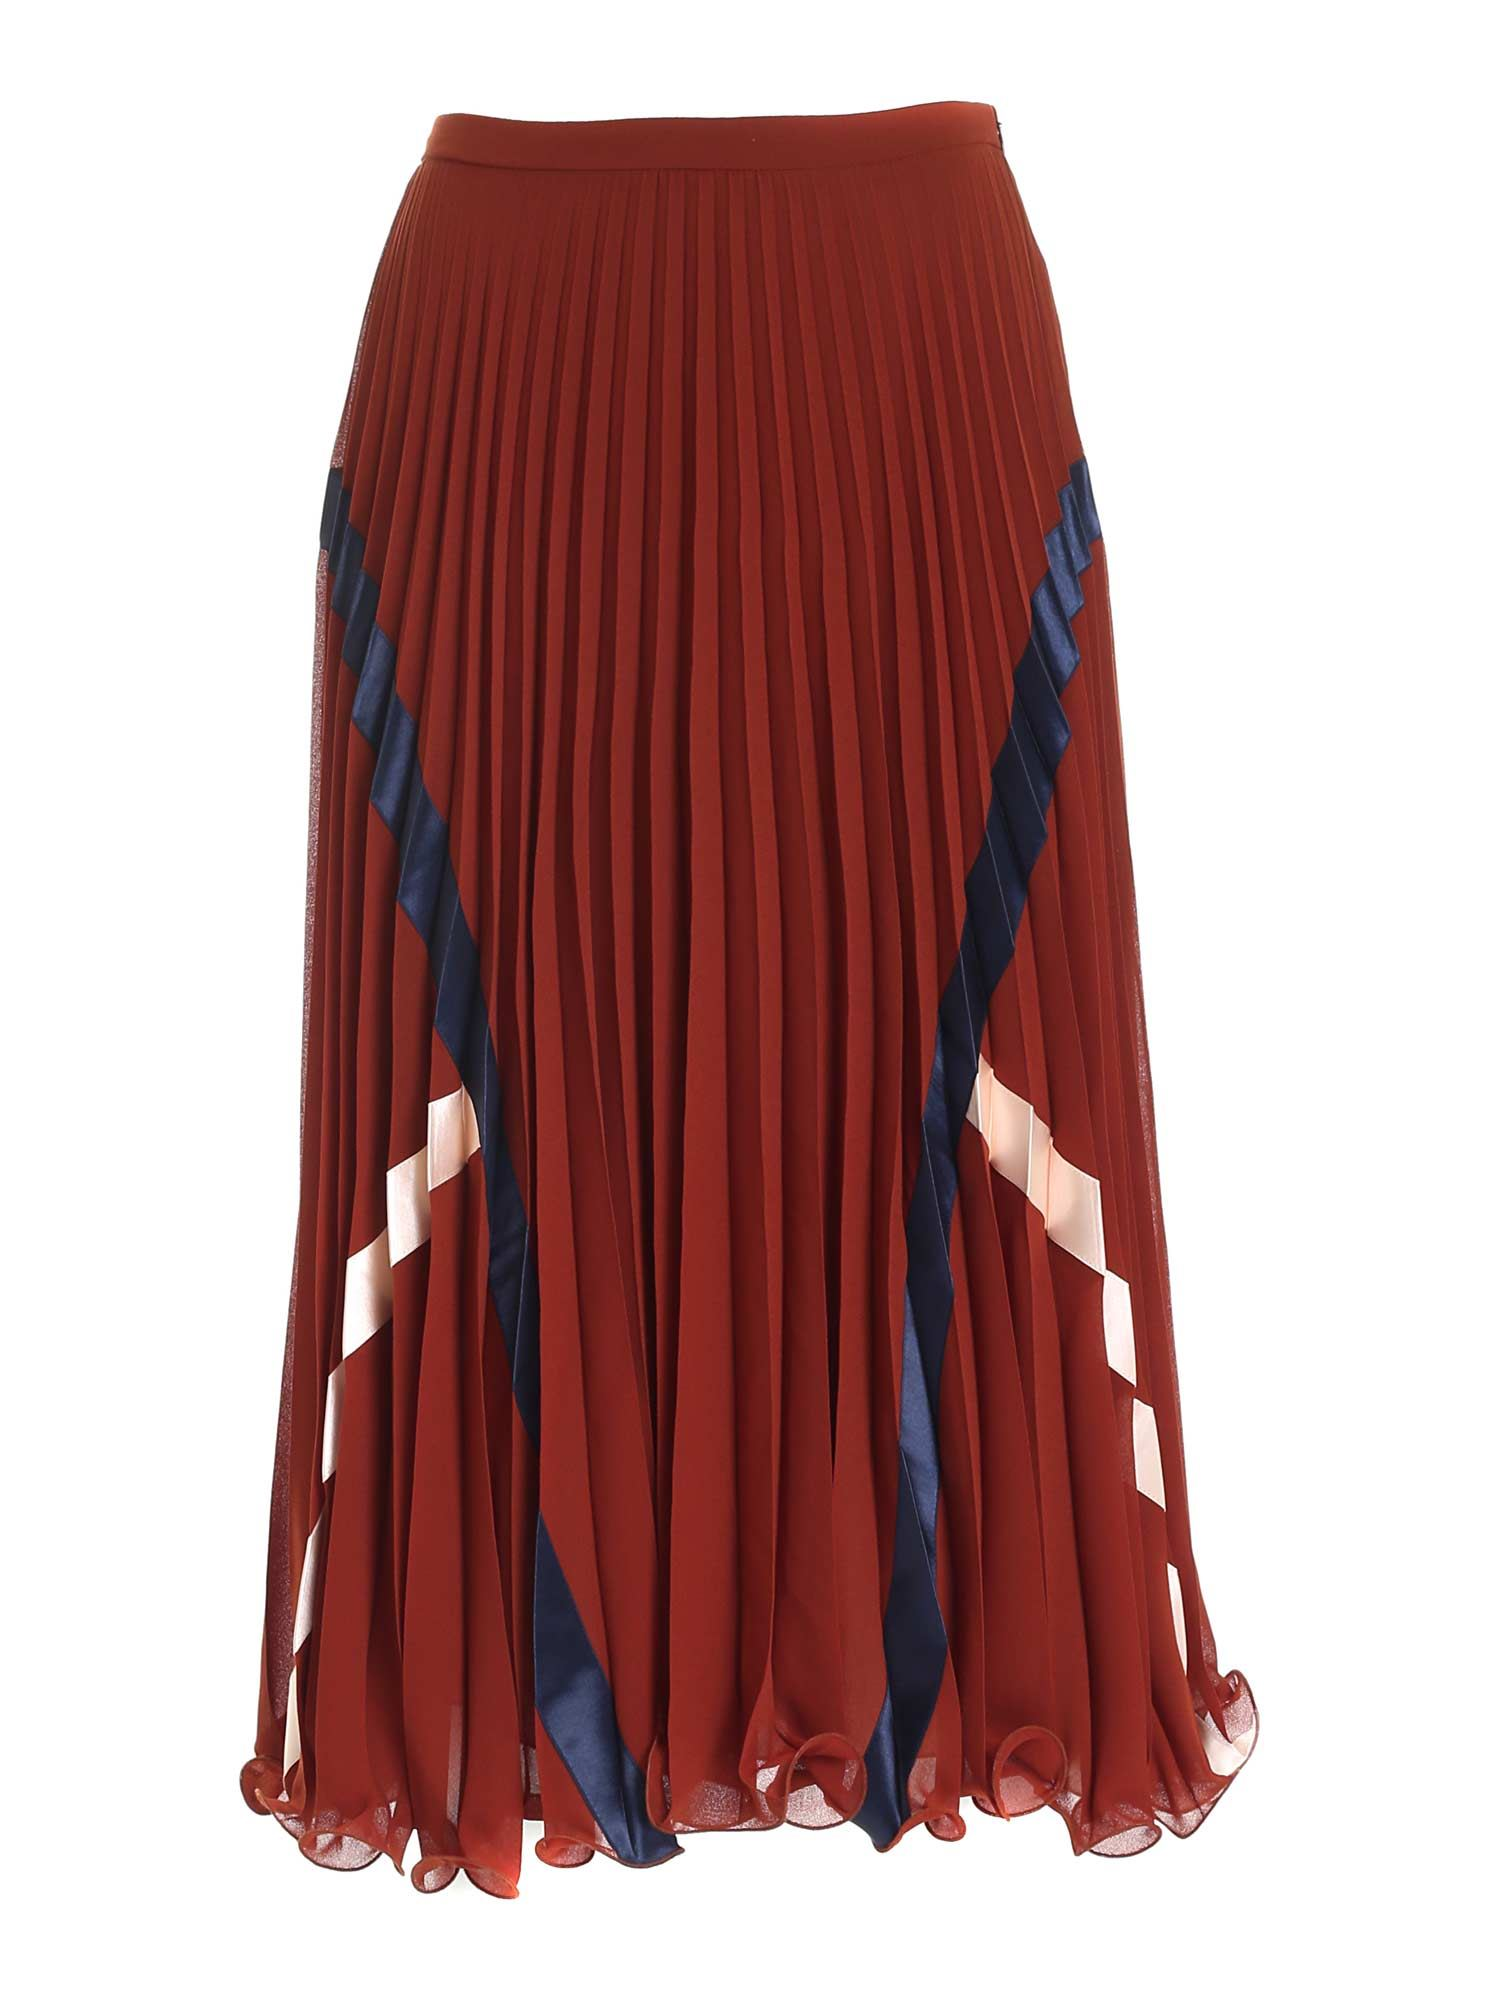 See By Chloé Linings PLEATED SKIRT IN BROWN